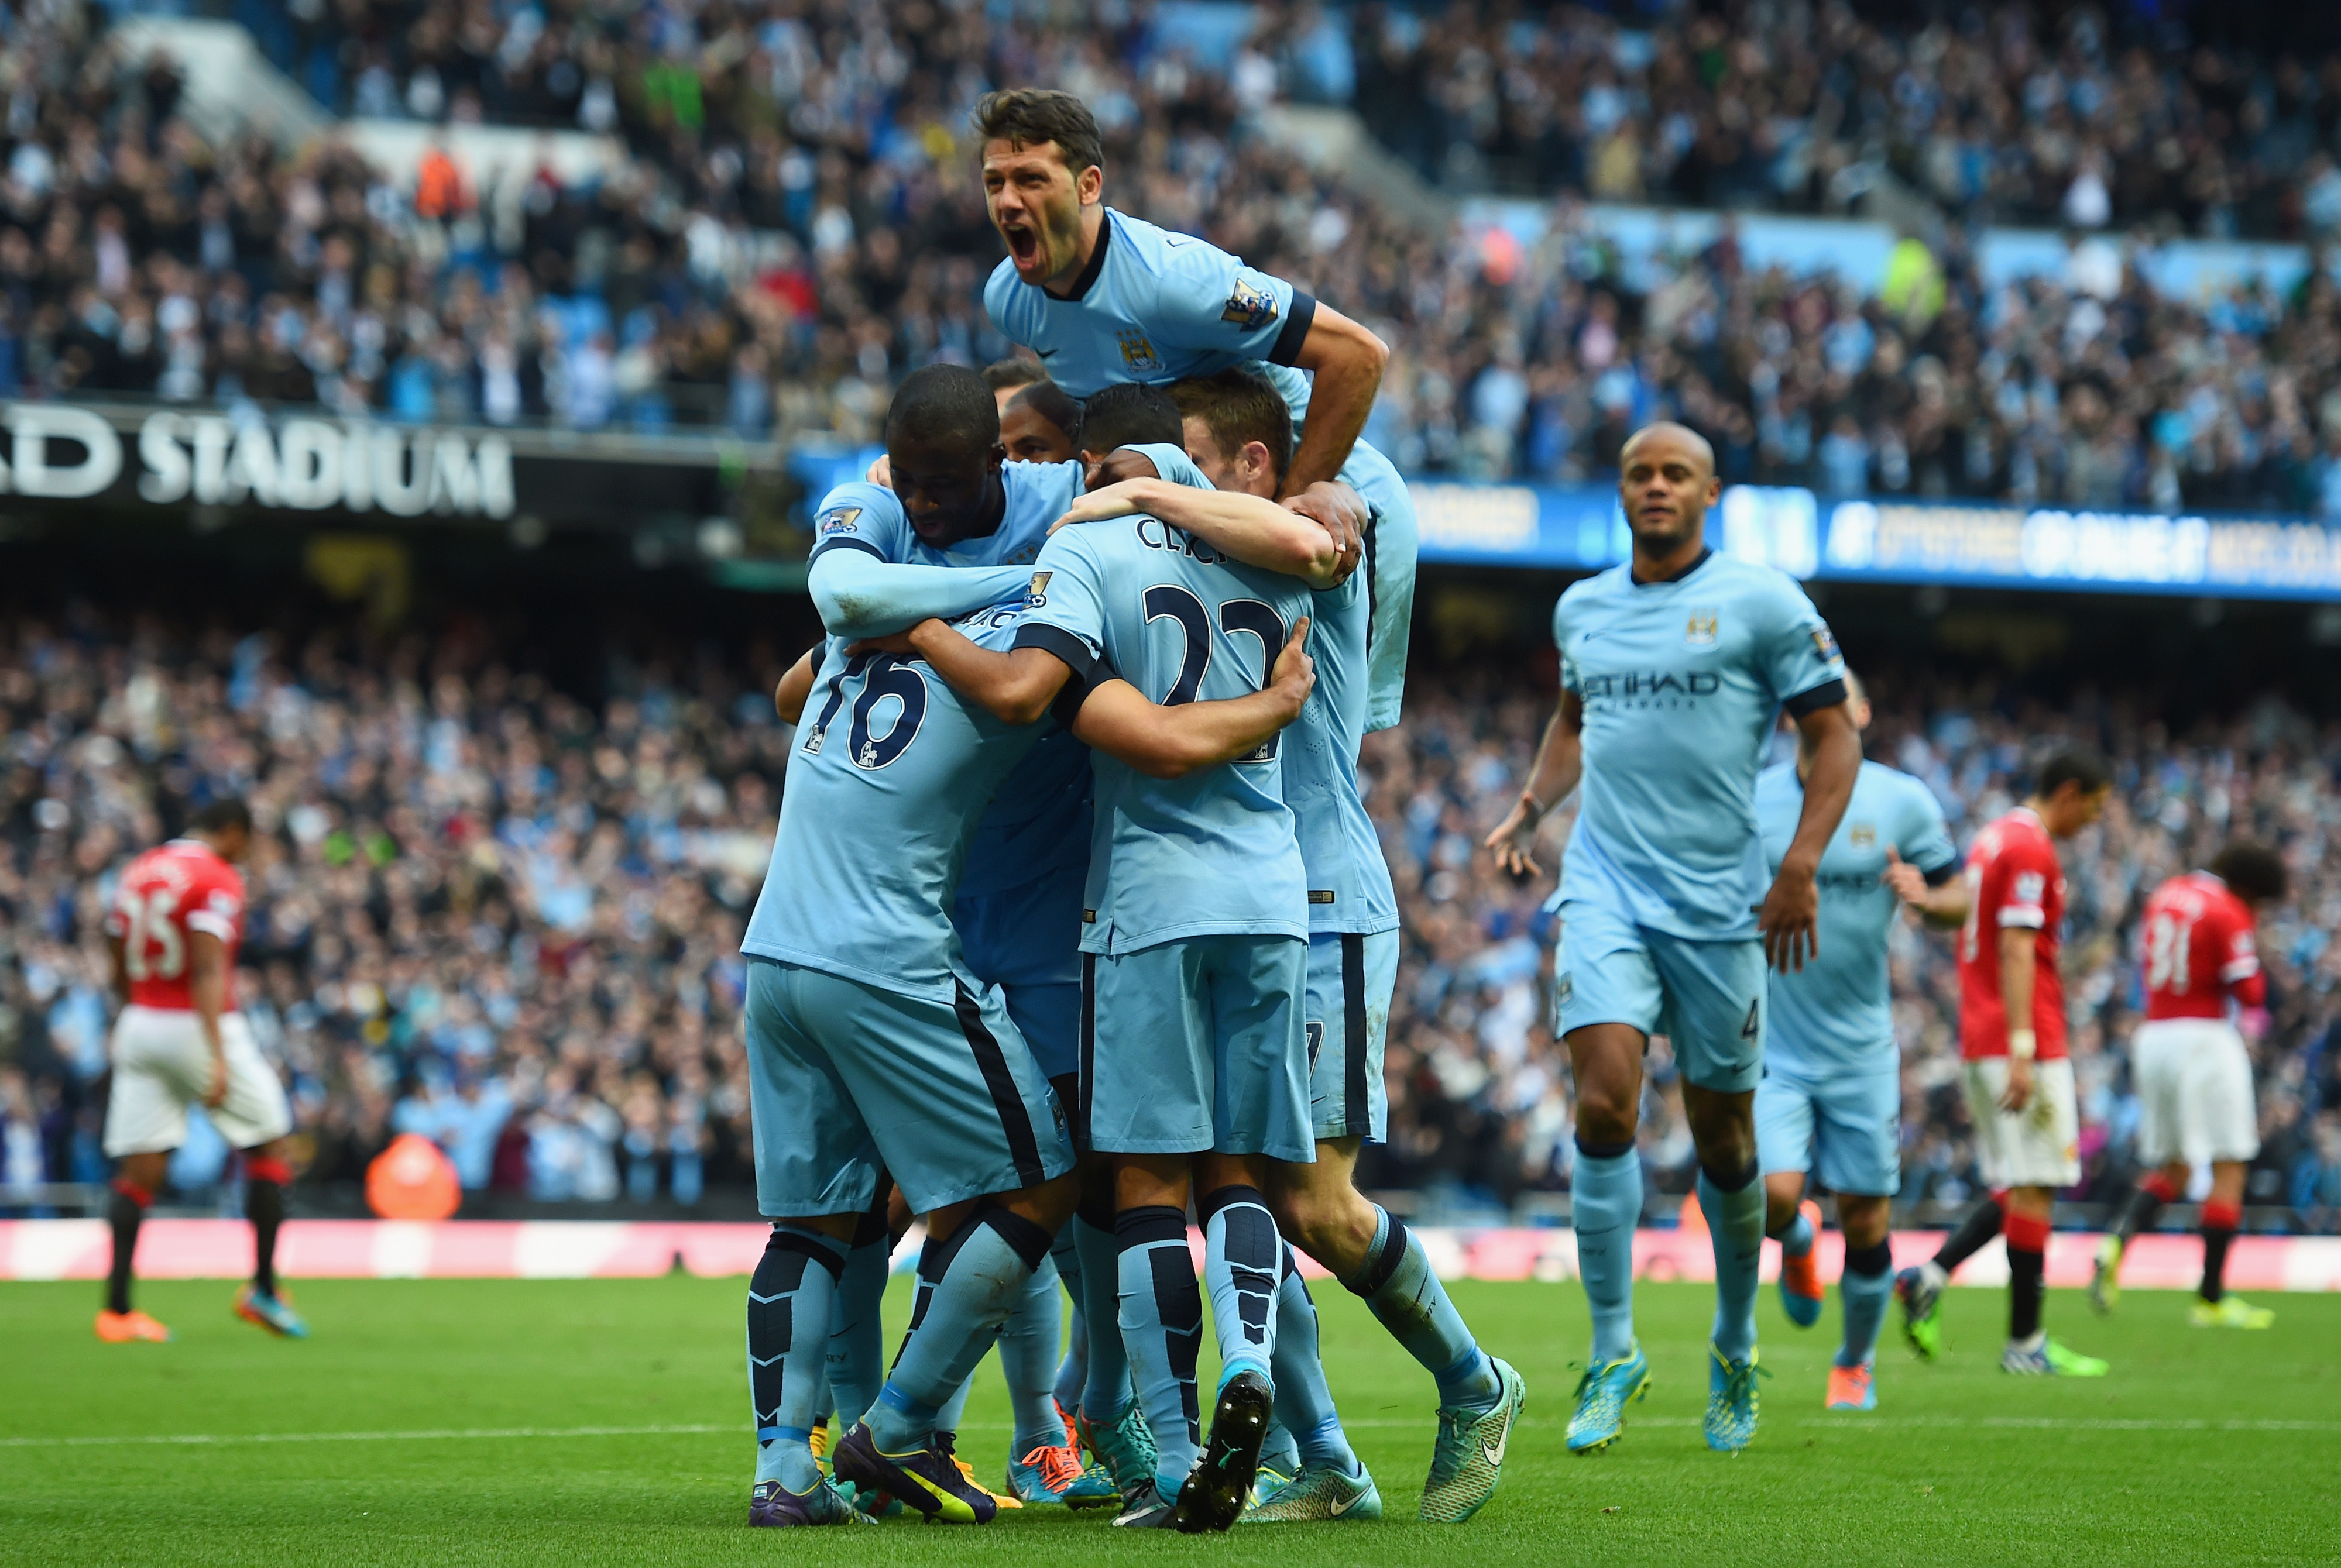 3 things we learned from City's 1-0 win over 10-man United